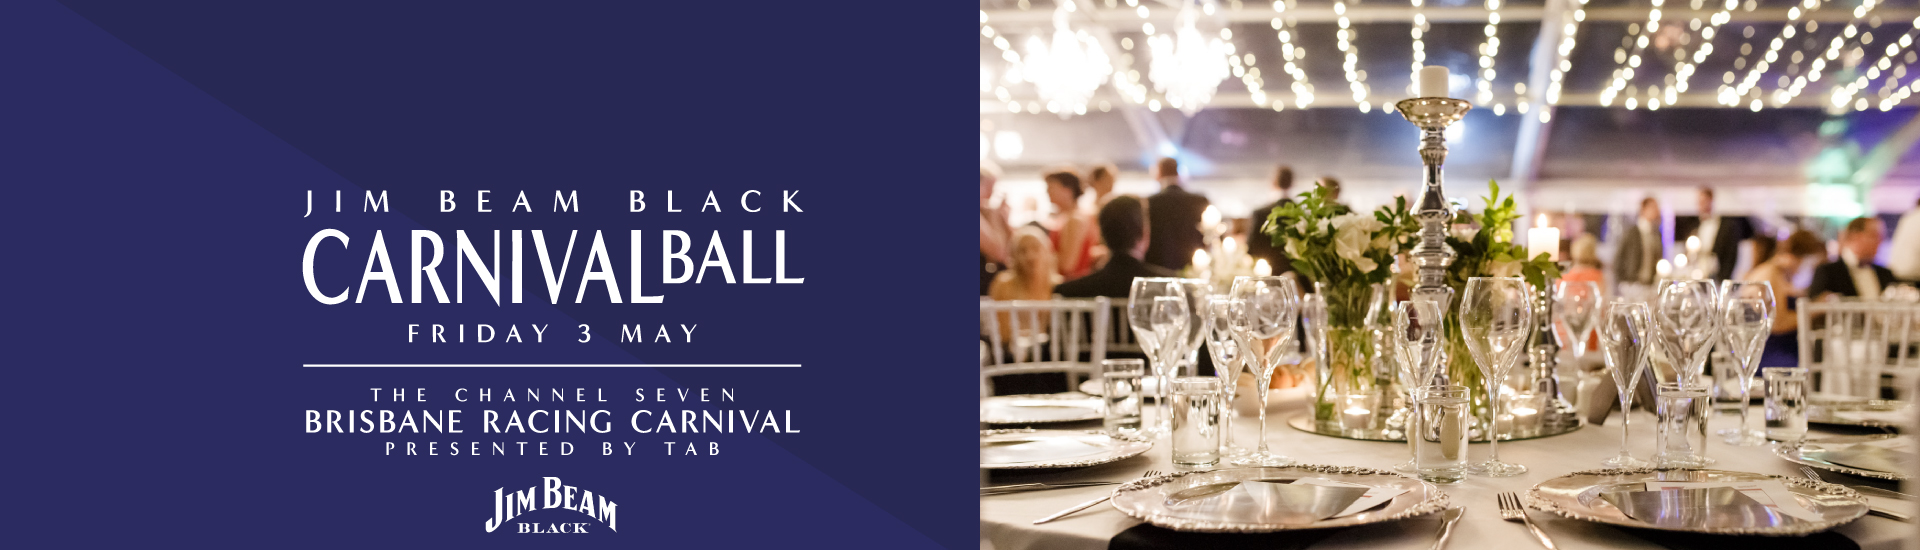 Channel Seven Brisbane Racing Carnival Ball Banner